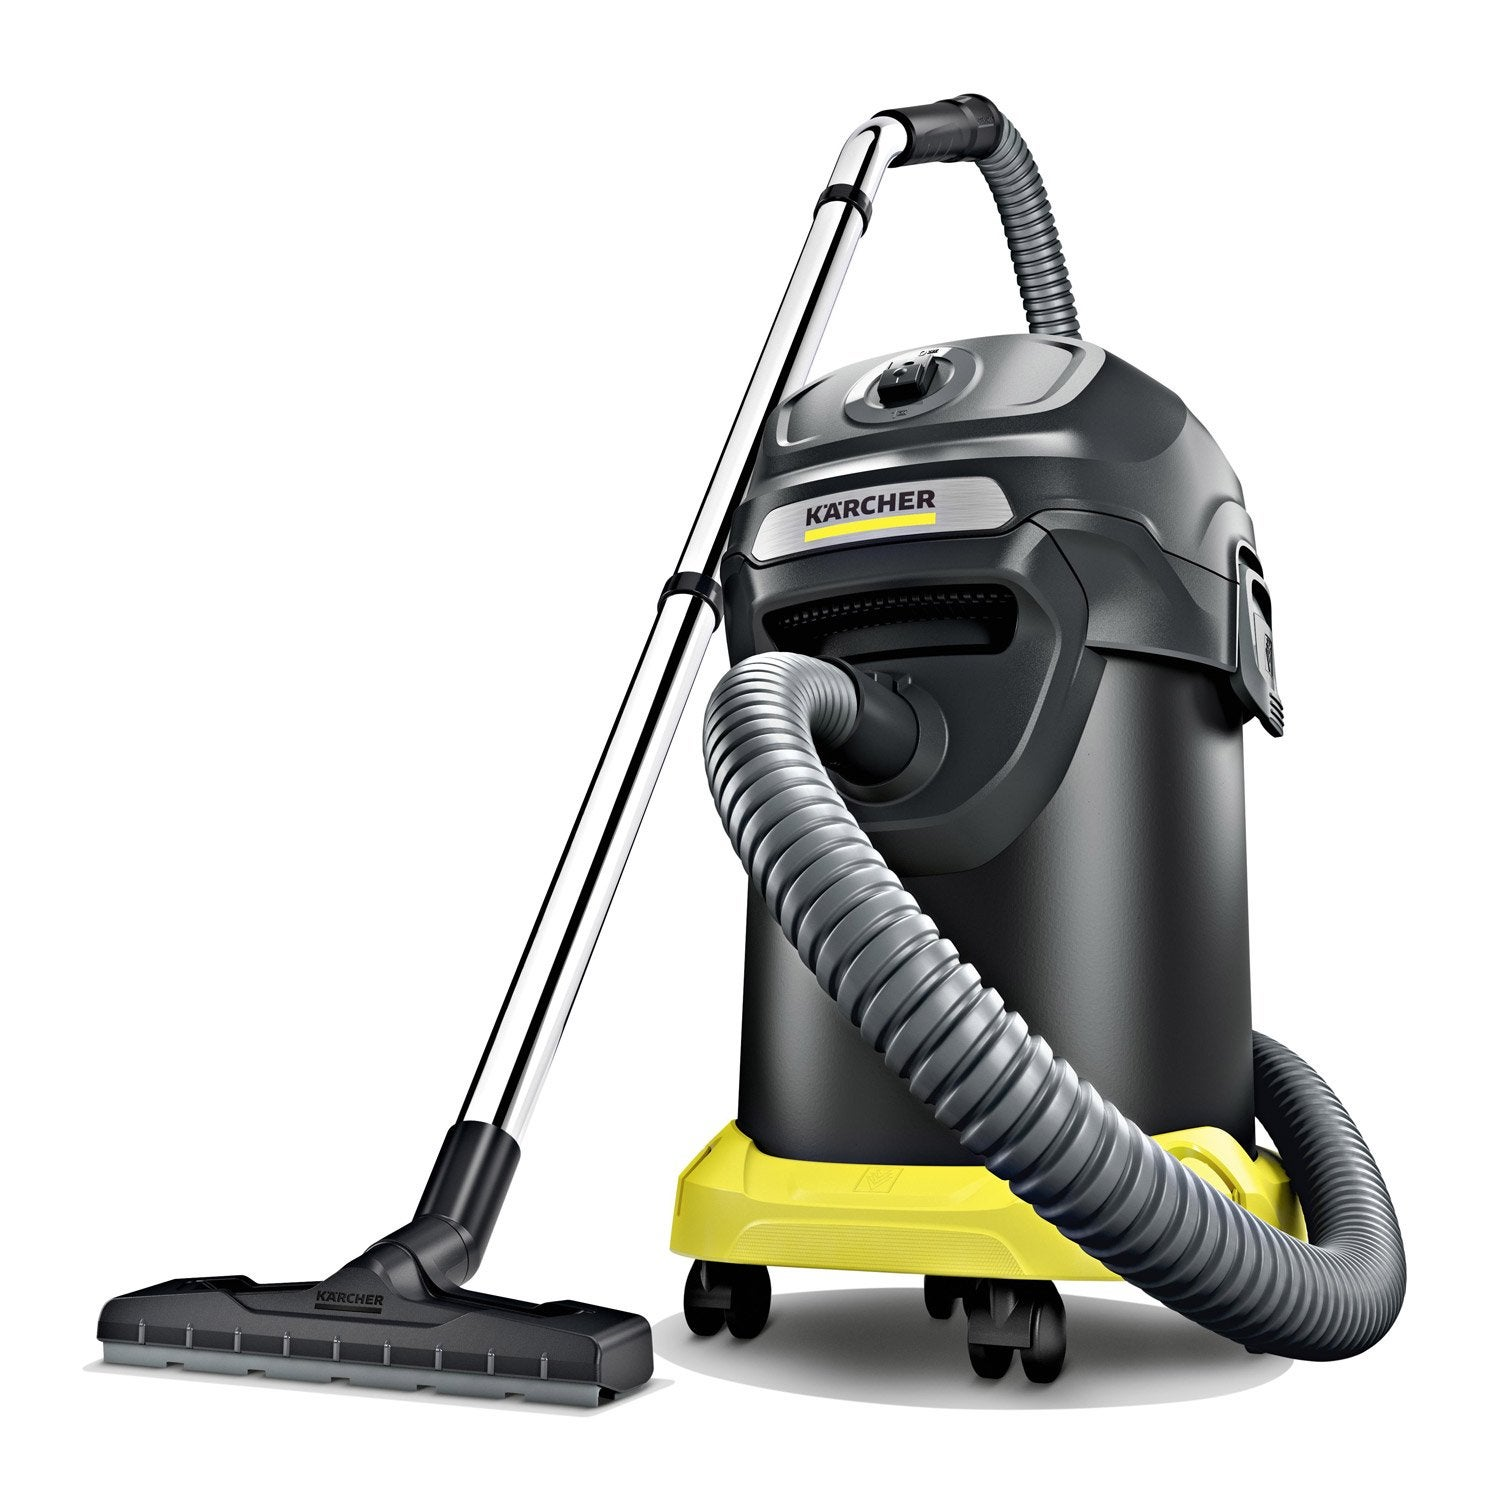 aspirateur karcher maison excellent rangement with. Black Bedroom Furniture Sets. Home Design Ideas